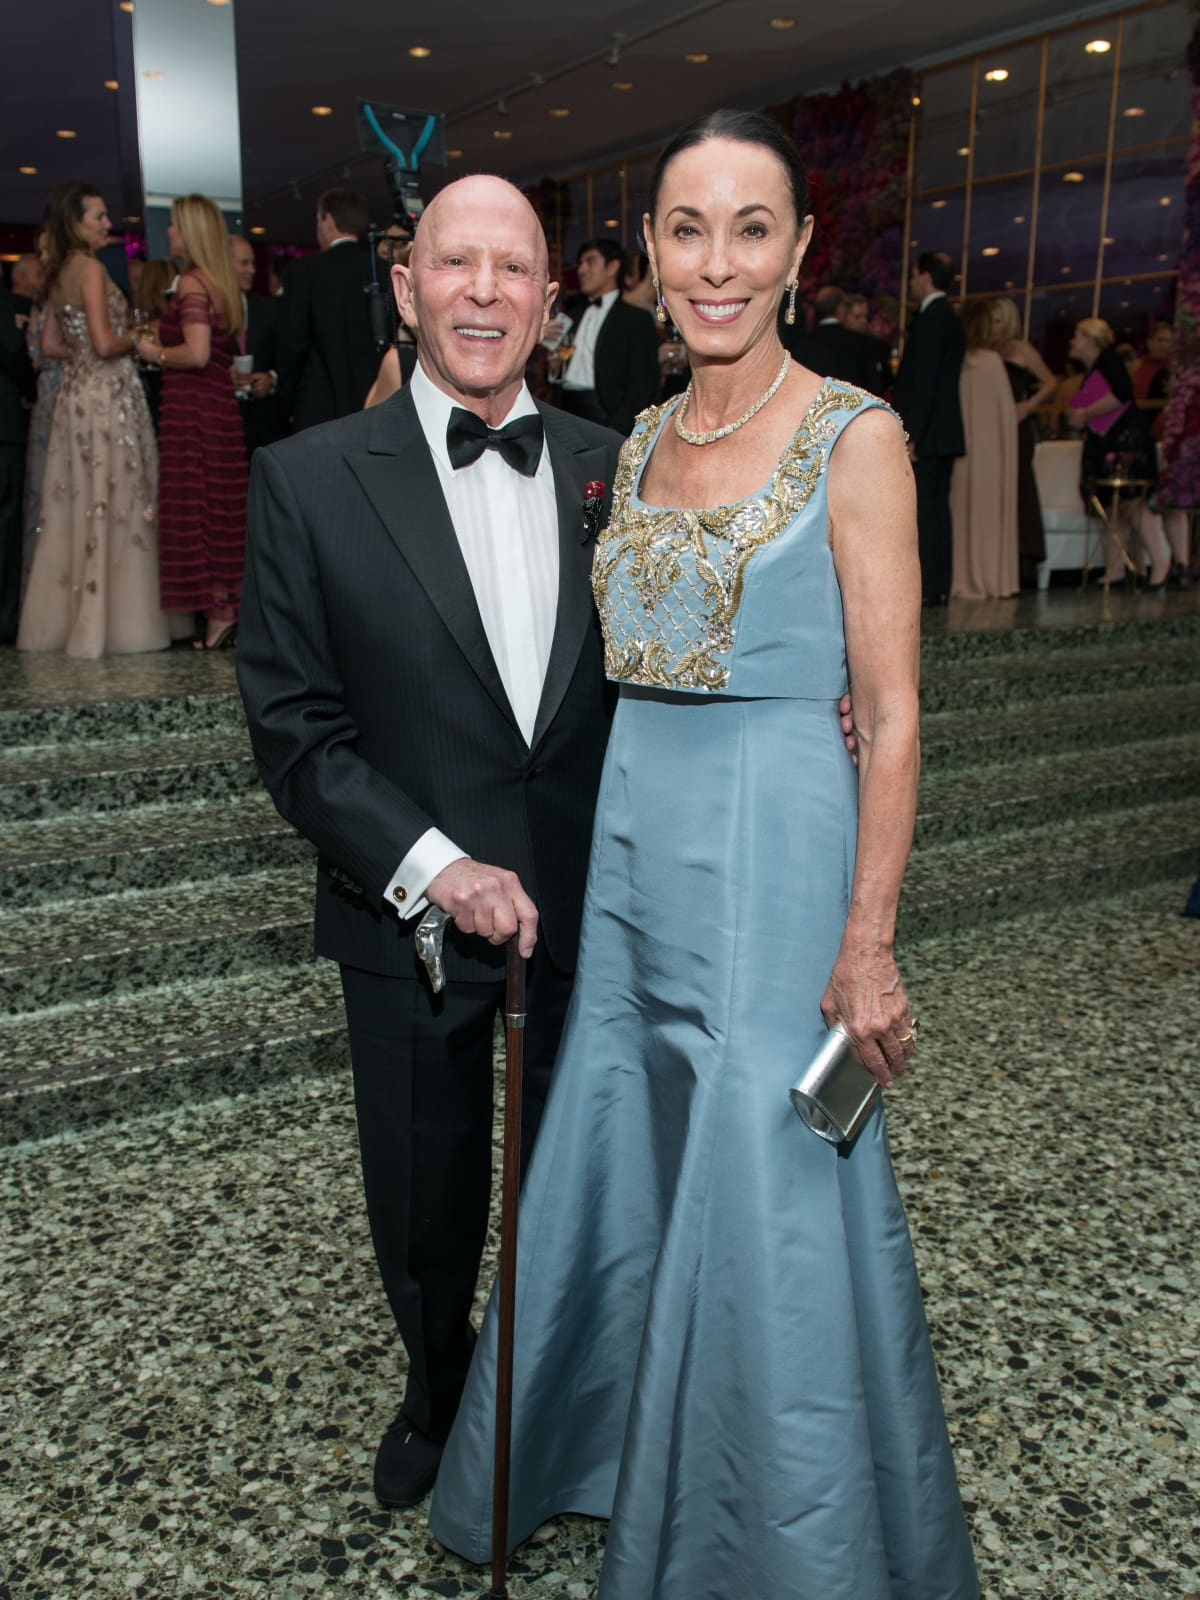 Sue and Lester Smith at MFAH Grand Gala Ball 2017